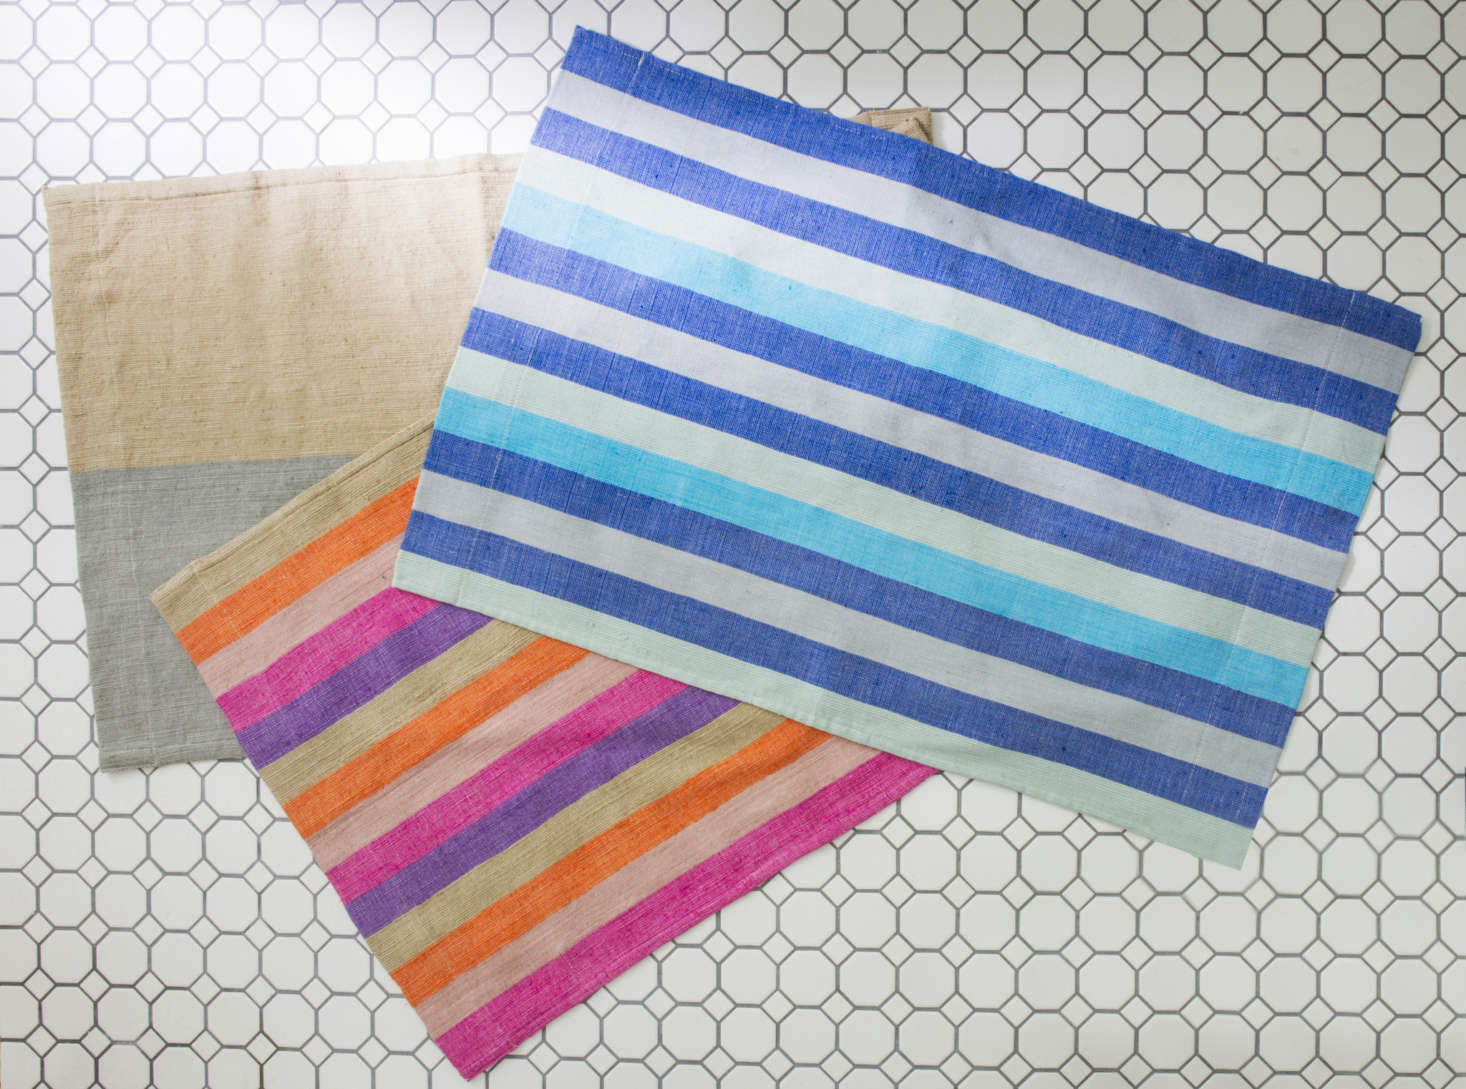 New bath mats in the same colorways as the Omo Valley Collection.